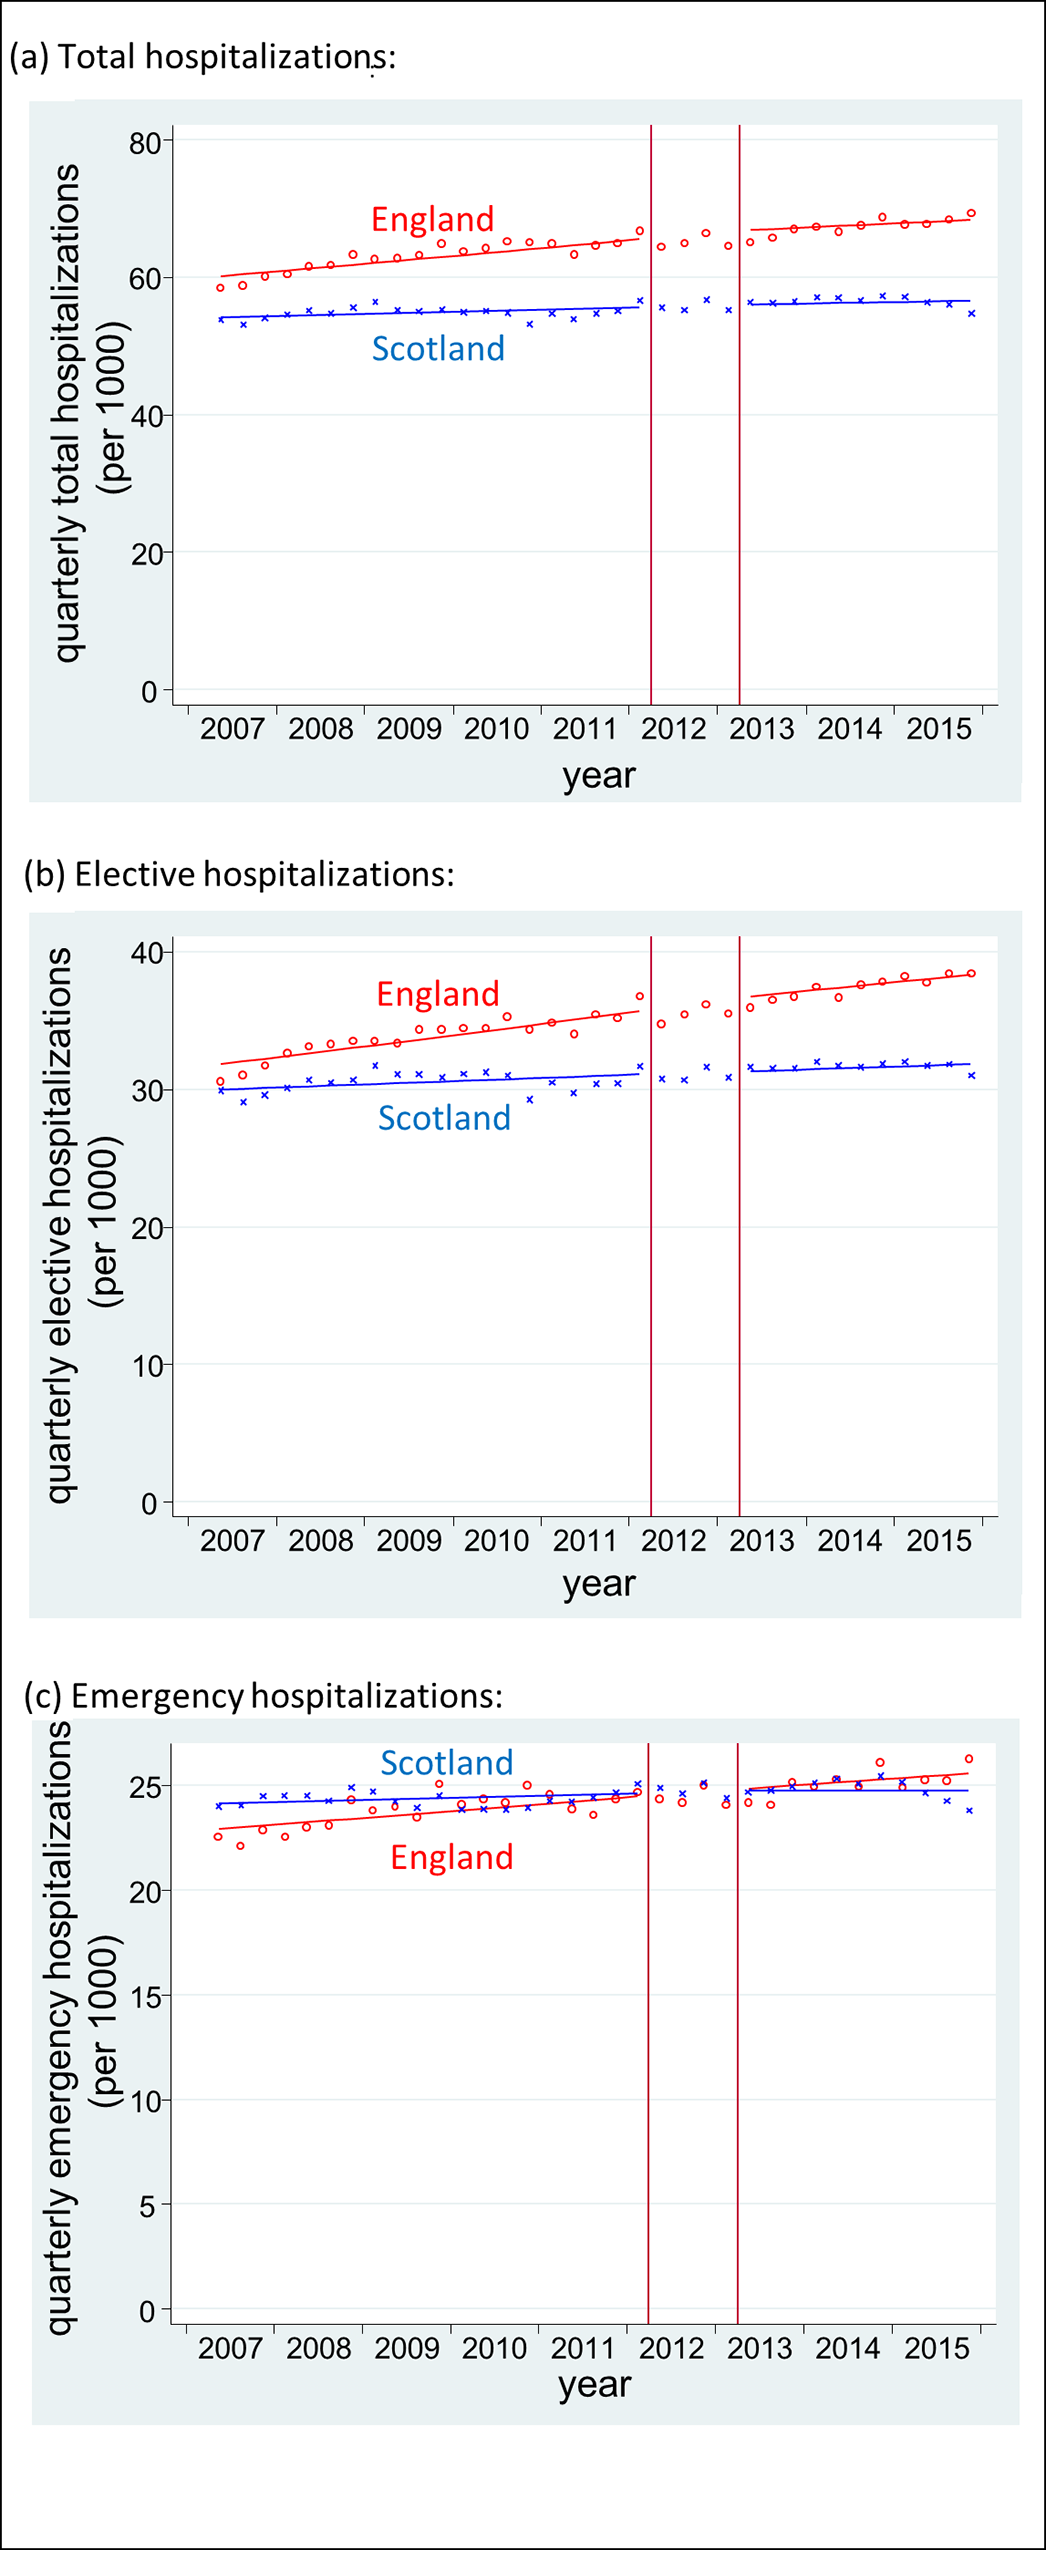 Time series of inpatient hospitalisations in England and Scotland.